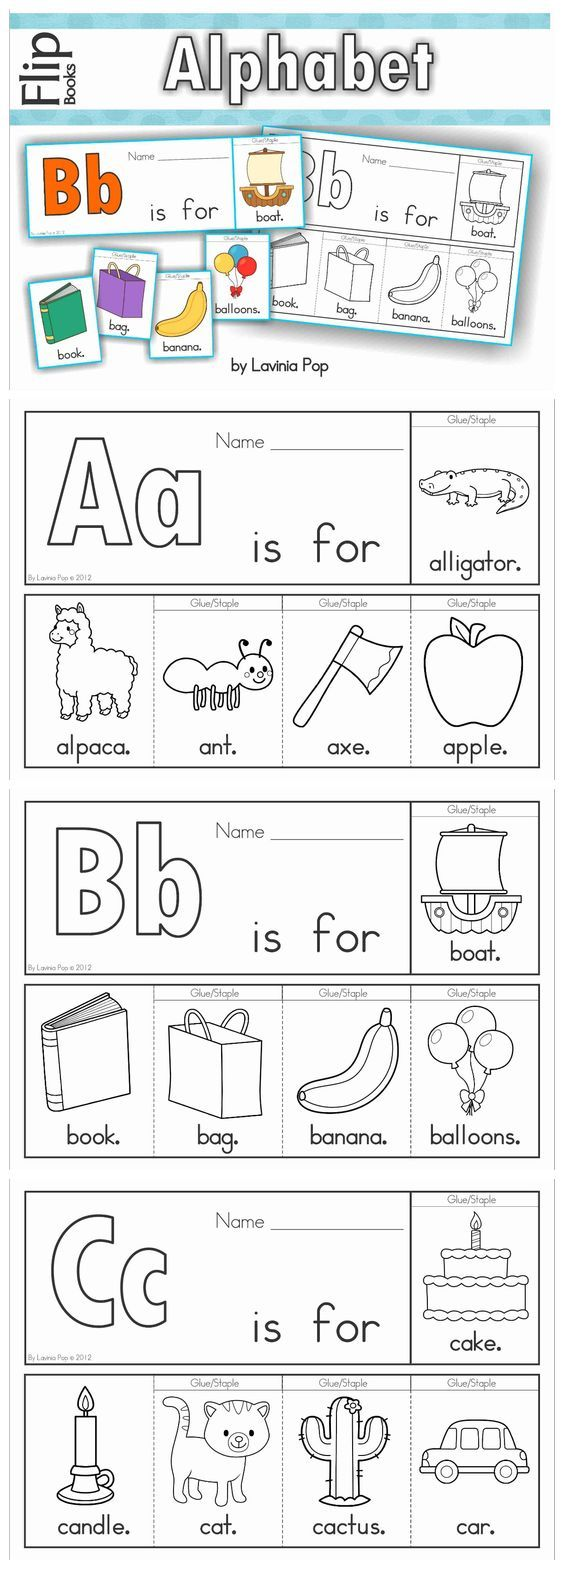 Alphabet Flip Books to introduce beginning sounds (color and black & white). Fantastic paper saving idea - a little booklet made from just one piece of paper!